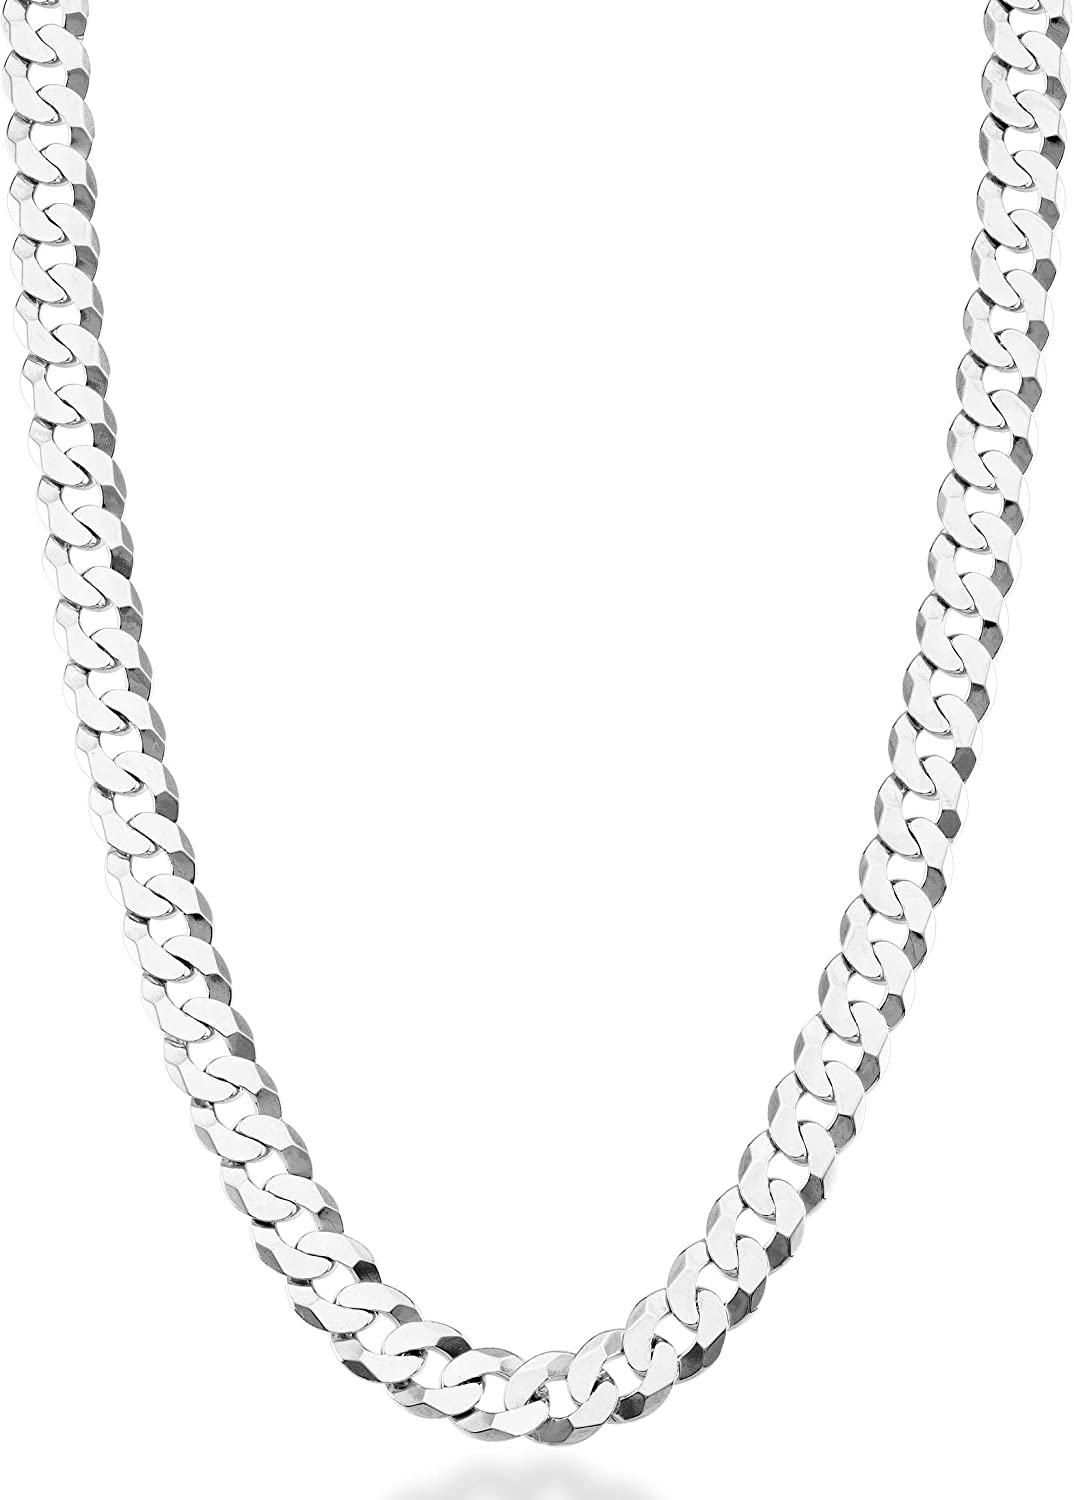 Miabella Solid 925 Sterling Silver Italian 7mm Diamond Cut Cuban Link Curb Chain Necklace for Men Women, 16, 18, 20, 22, 24, 26, 30 Inch